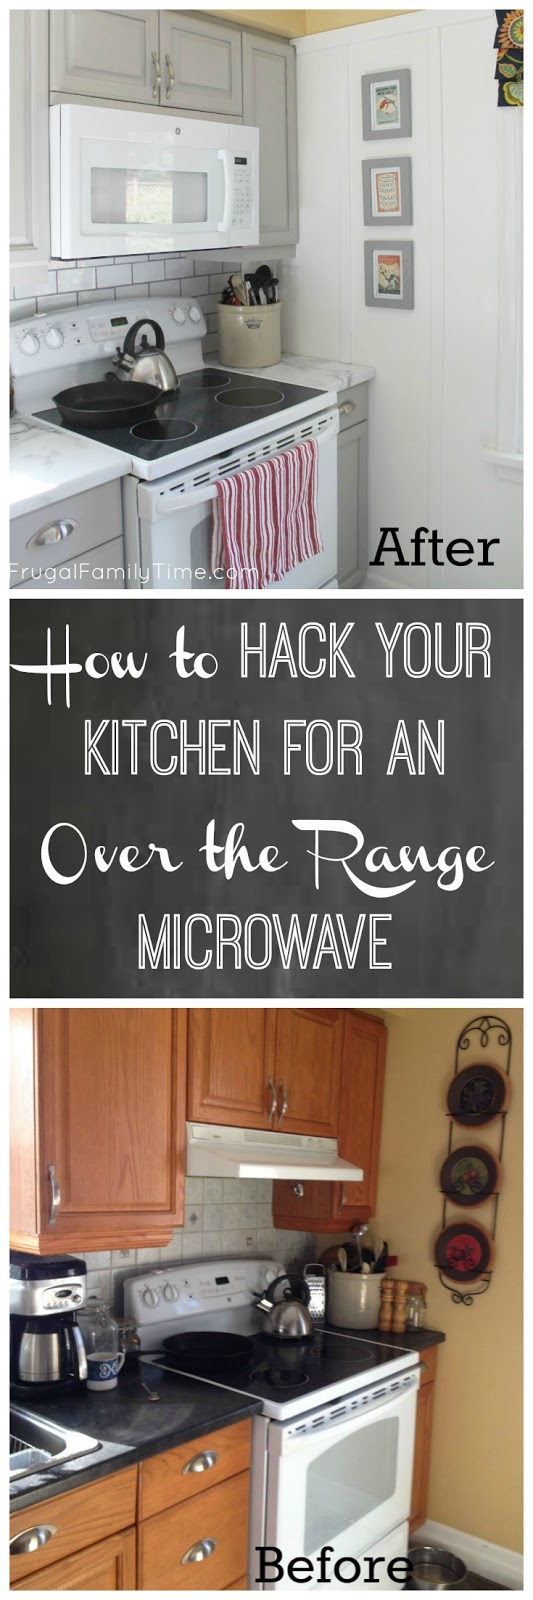 How to Cut a Cabinet for Over the Range Microwave